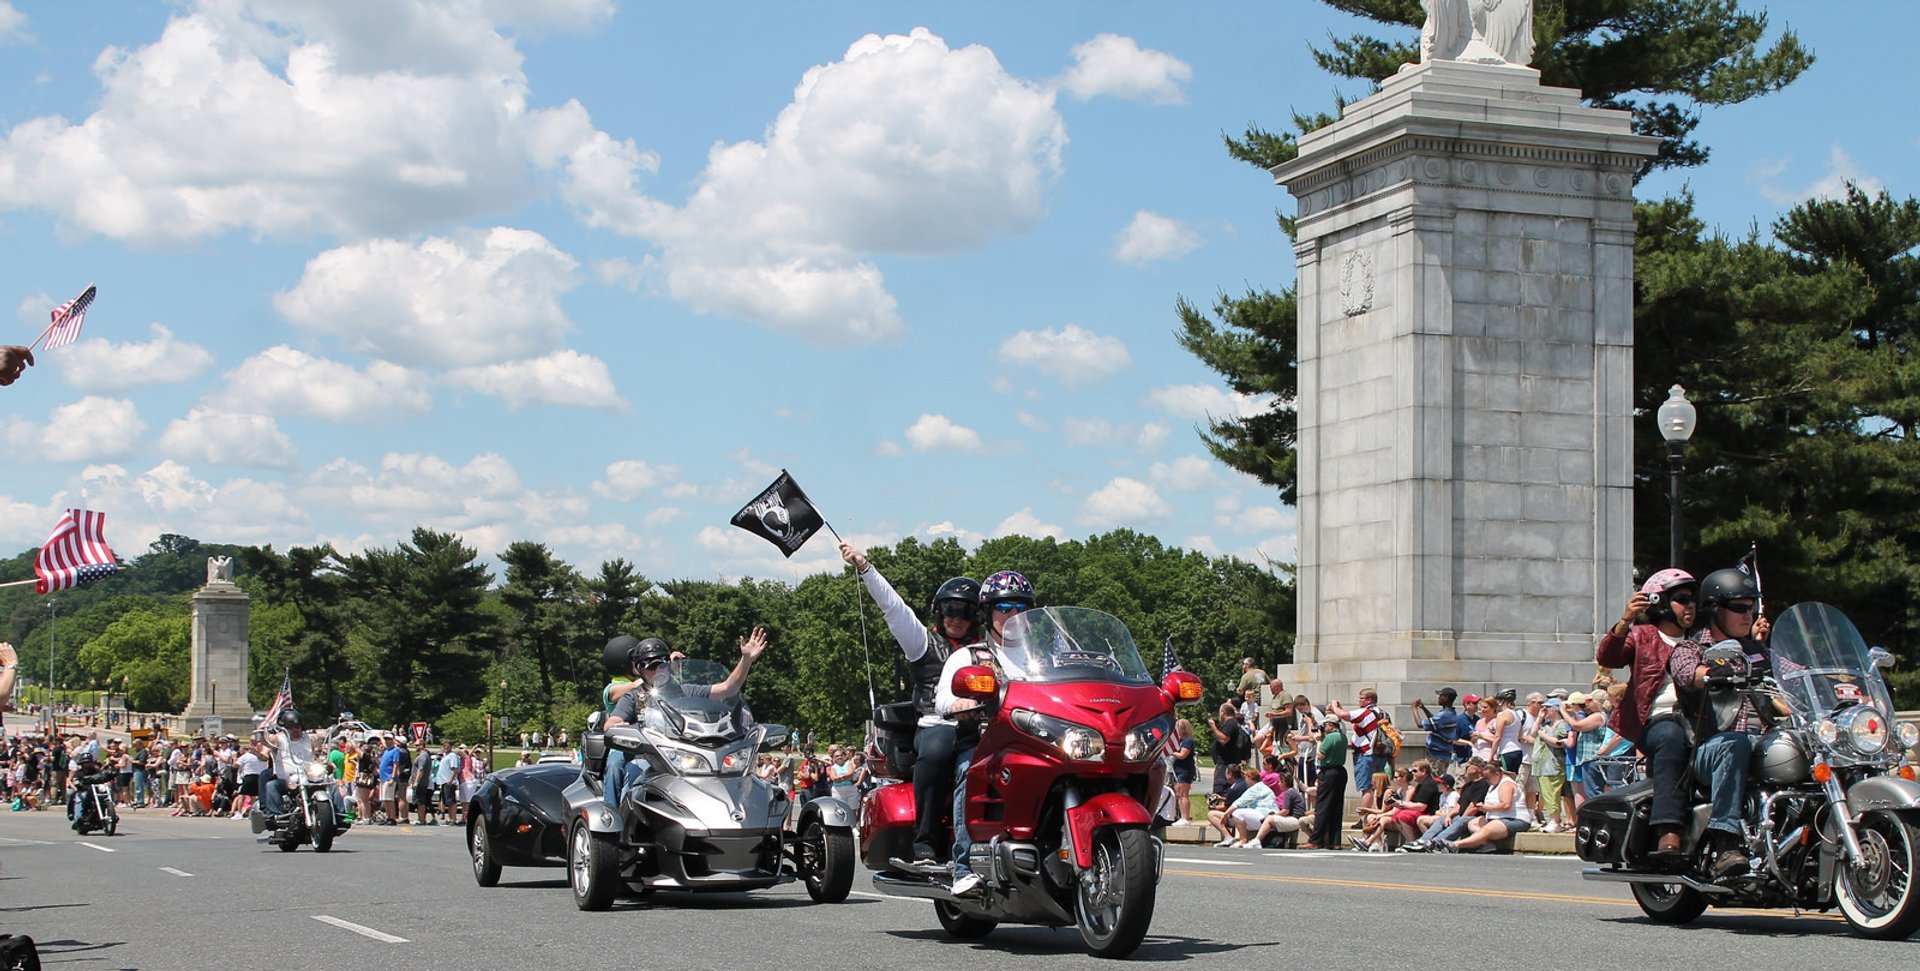 Best time for Rolling Thunder 'Ride for Freedom' in Washington, D.C. 2020